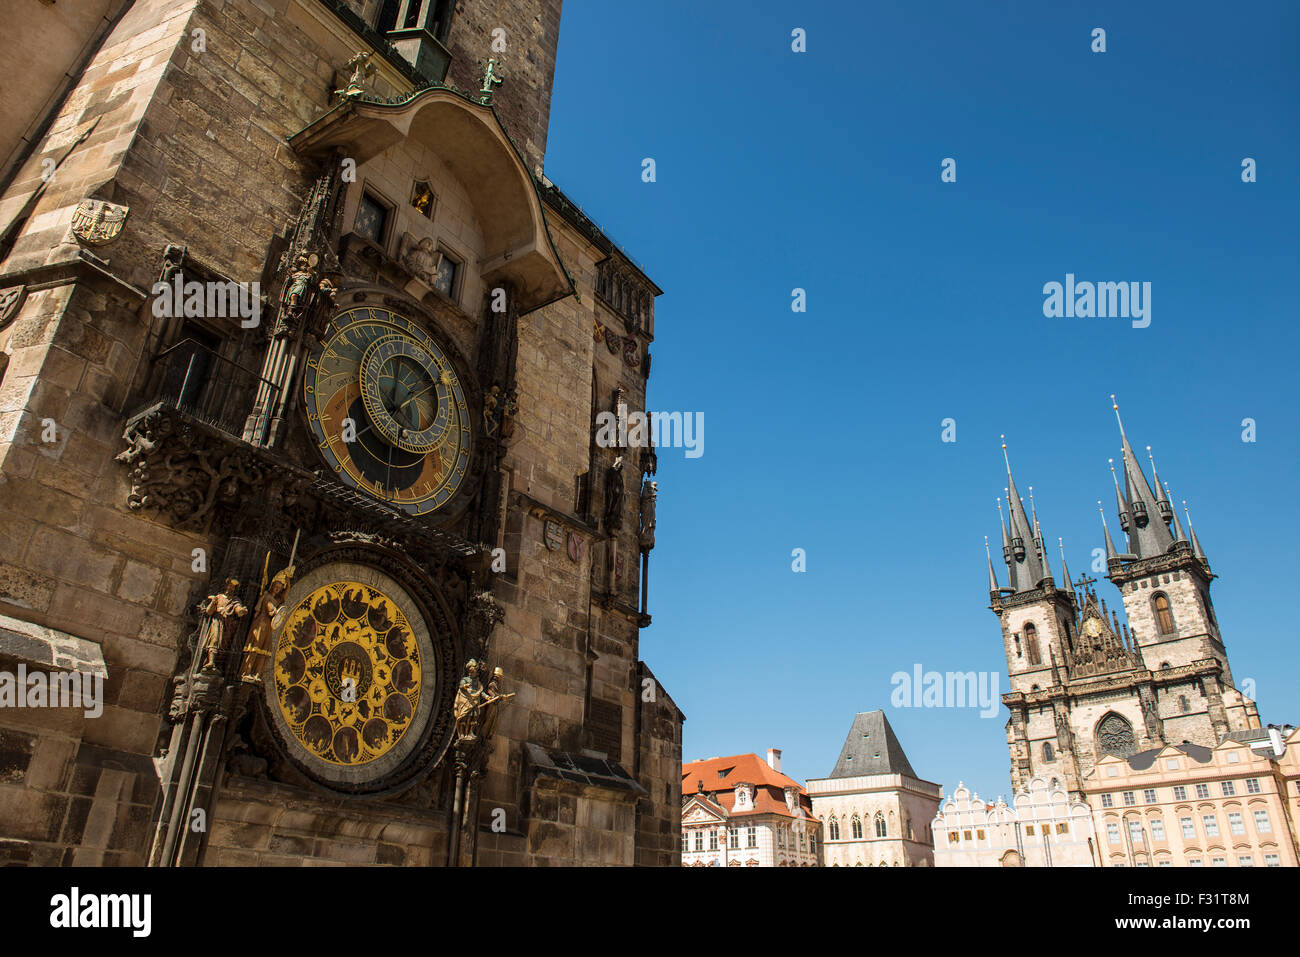 Old astronomical clock (Prague Orloj) in Old Town Square with Church of our lady before Tyn, Prague, Bohemia, Czech - Stock Image